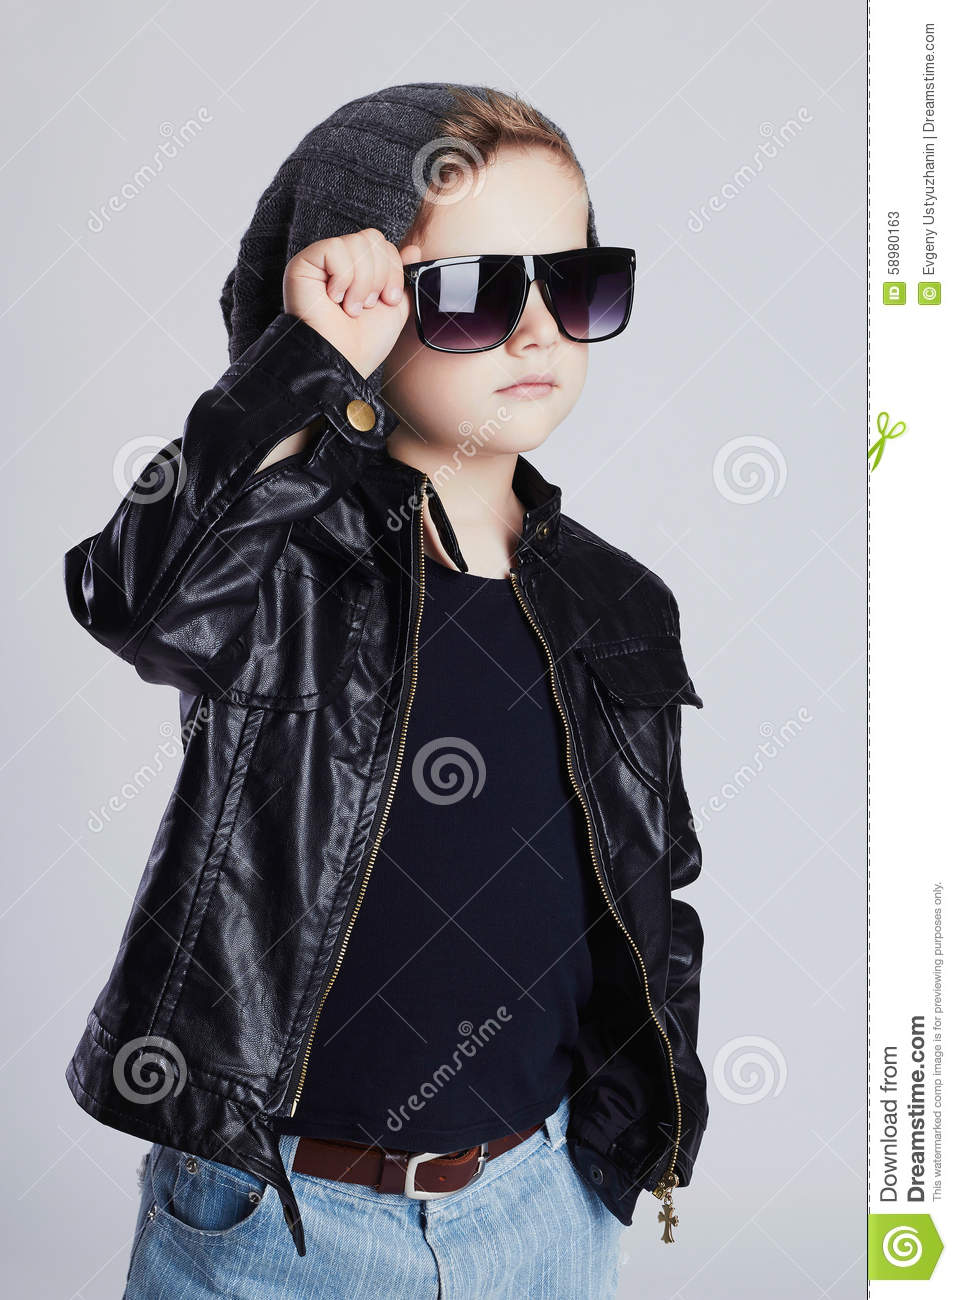 Funny Child Fashionable Little Boy In Sunglasses Emotion